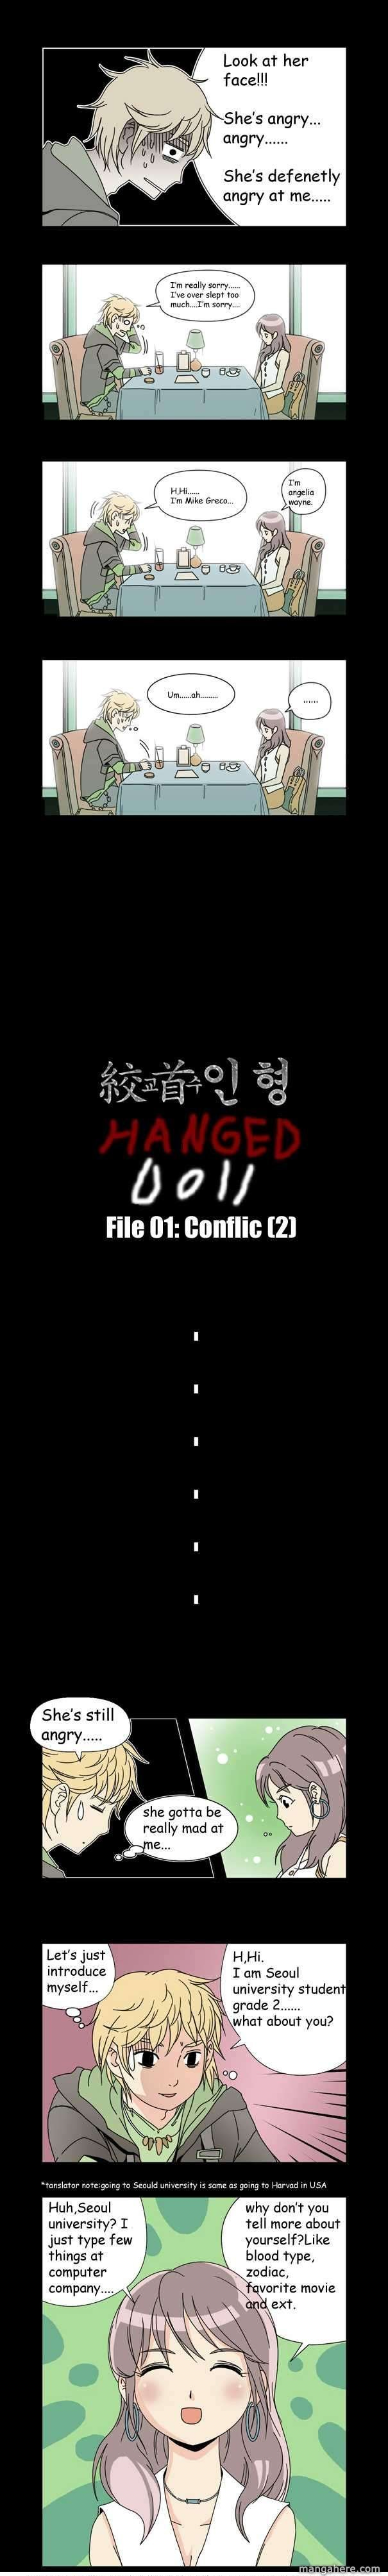 Hanged Doll 2 Page 2